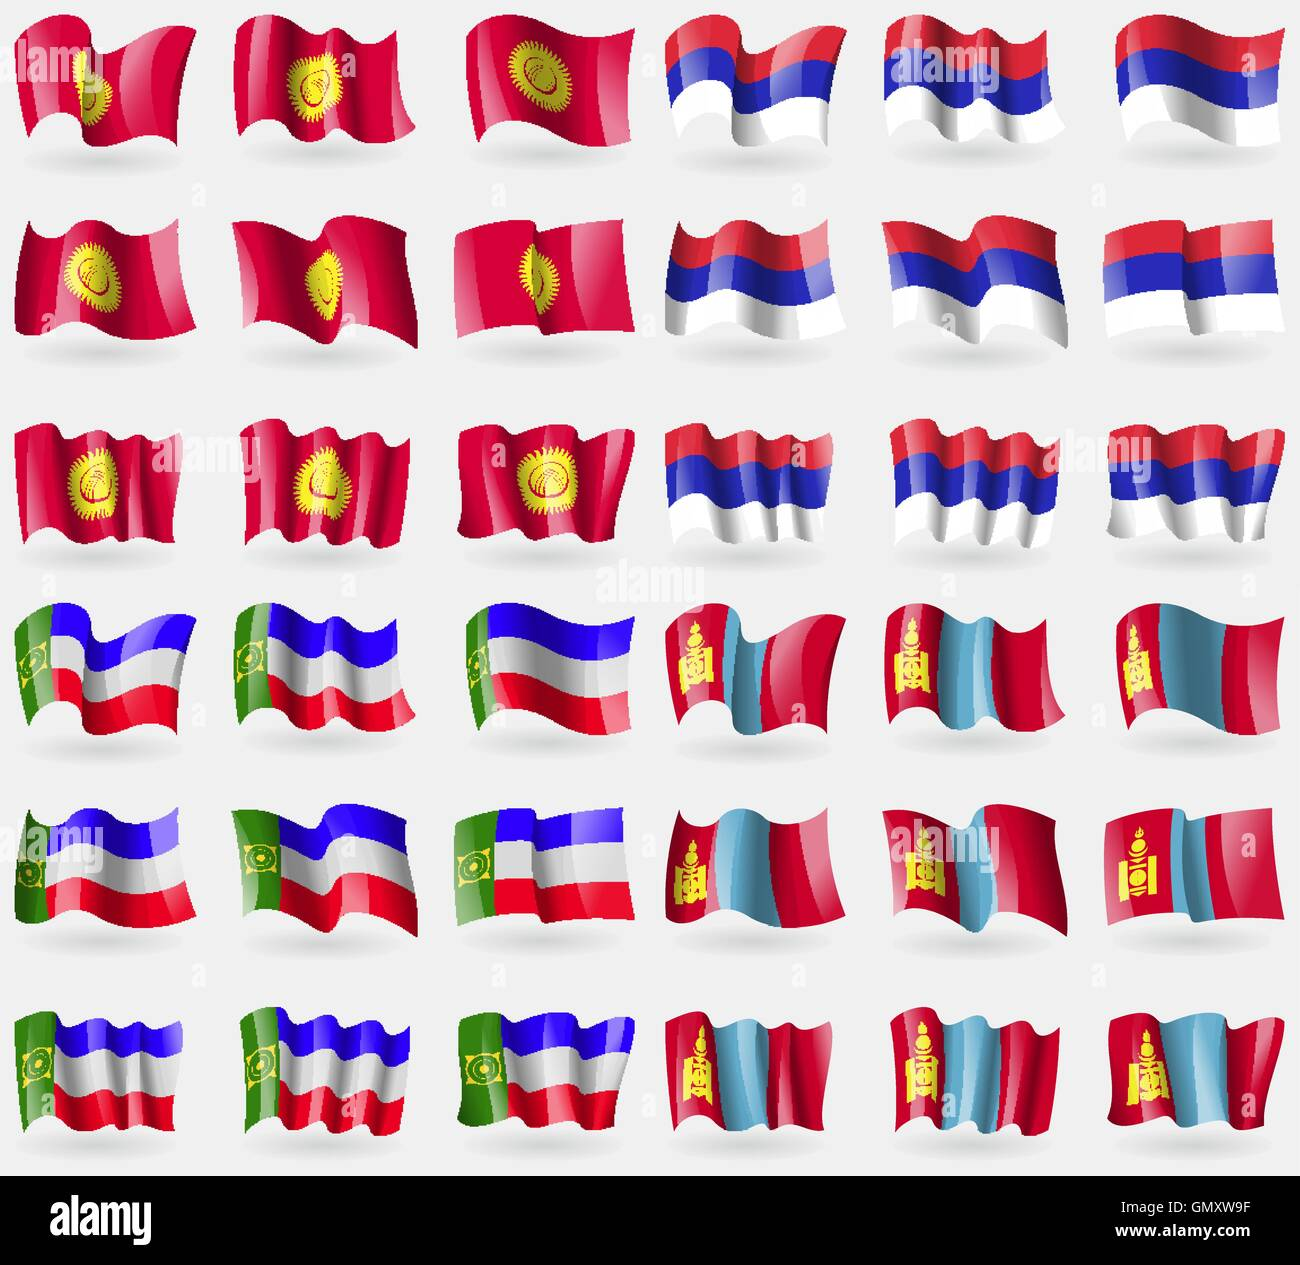 Kyrgyzstan, Republika Srpska, Khakassia, Mongolia. Set of 36 flags of the countries of the world. Vector - Stock Vector